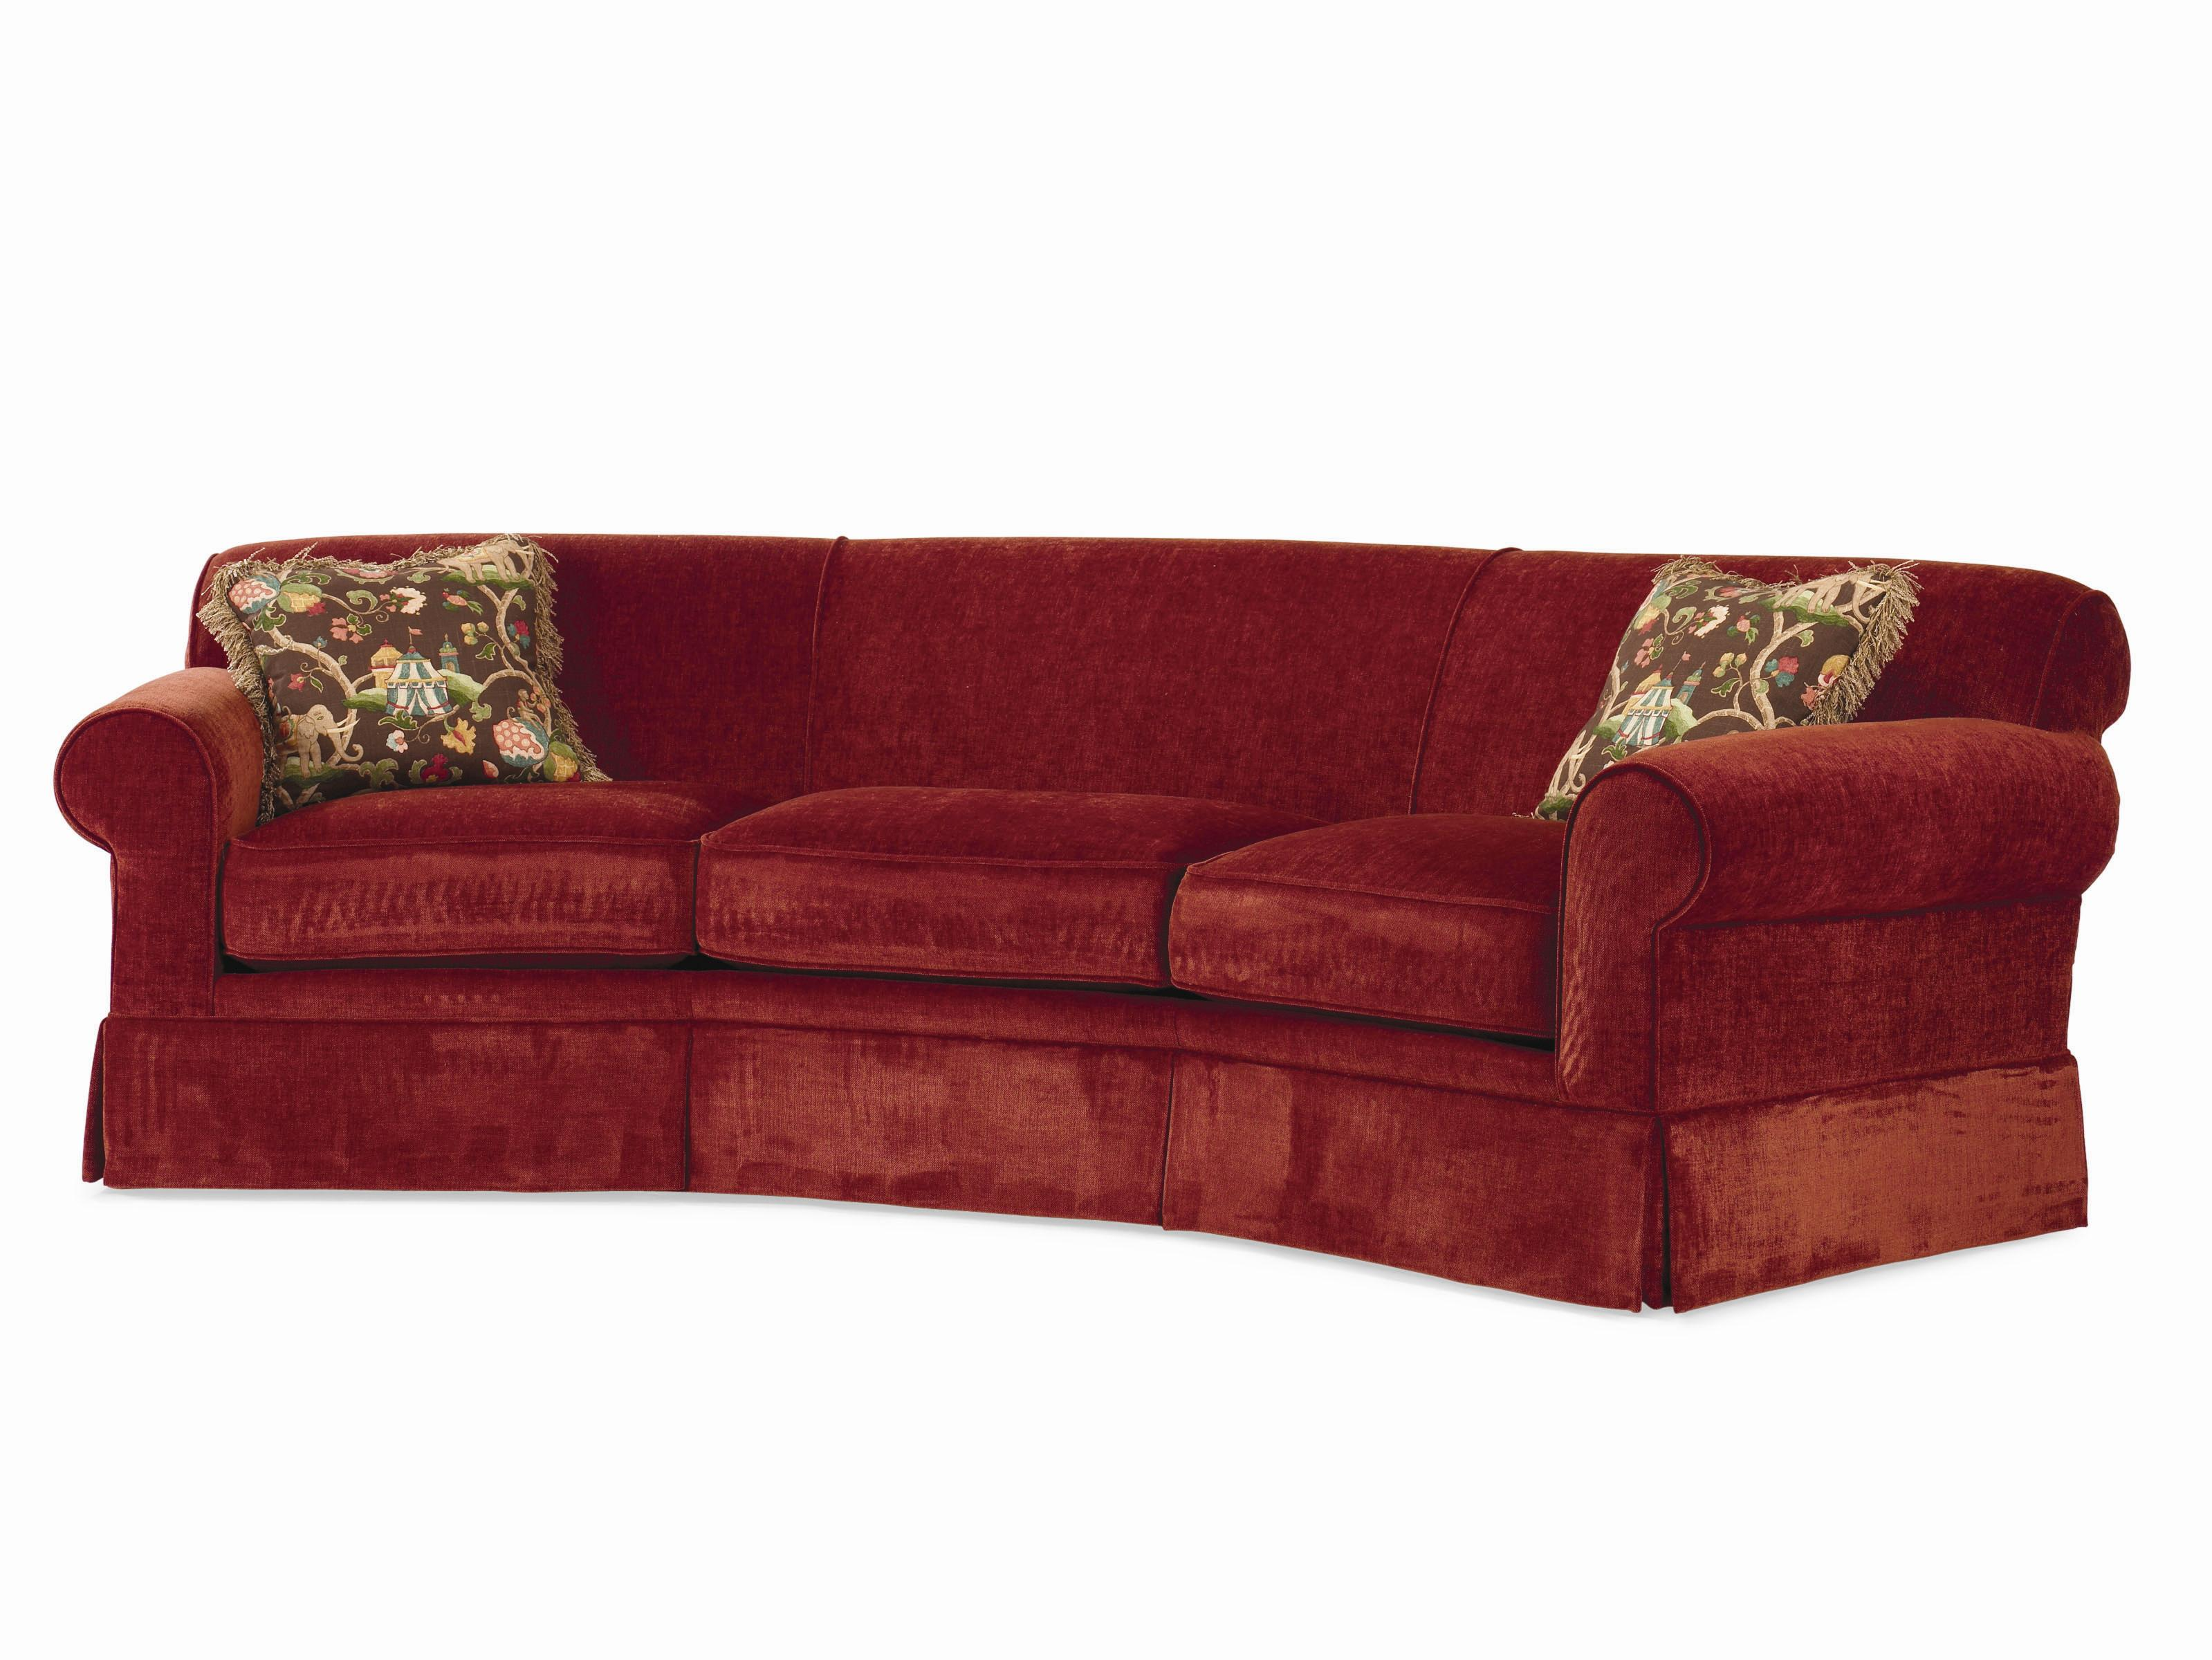 Cornerstone  <b>Customizable</b> Conversation Sofa by Century at Alison Craig Home Furnishings